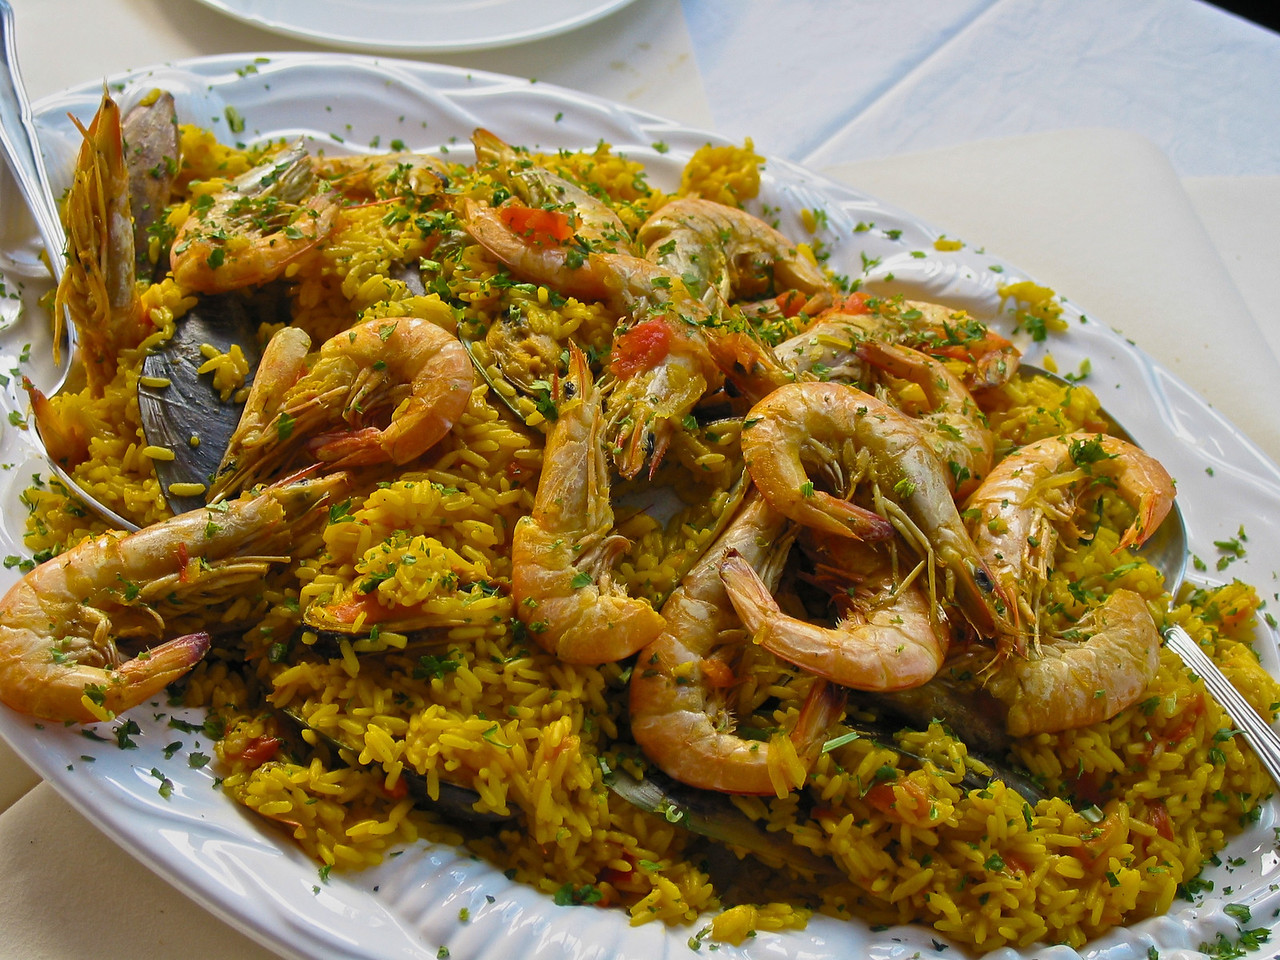 ..that serves traditional paella...